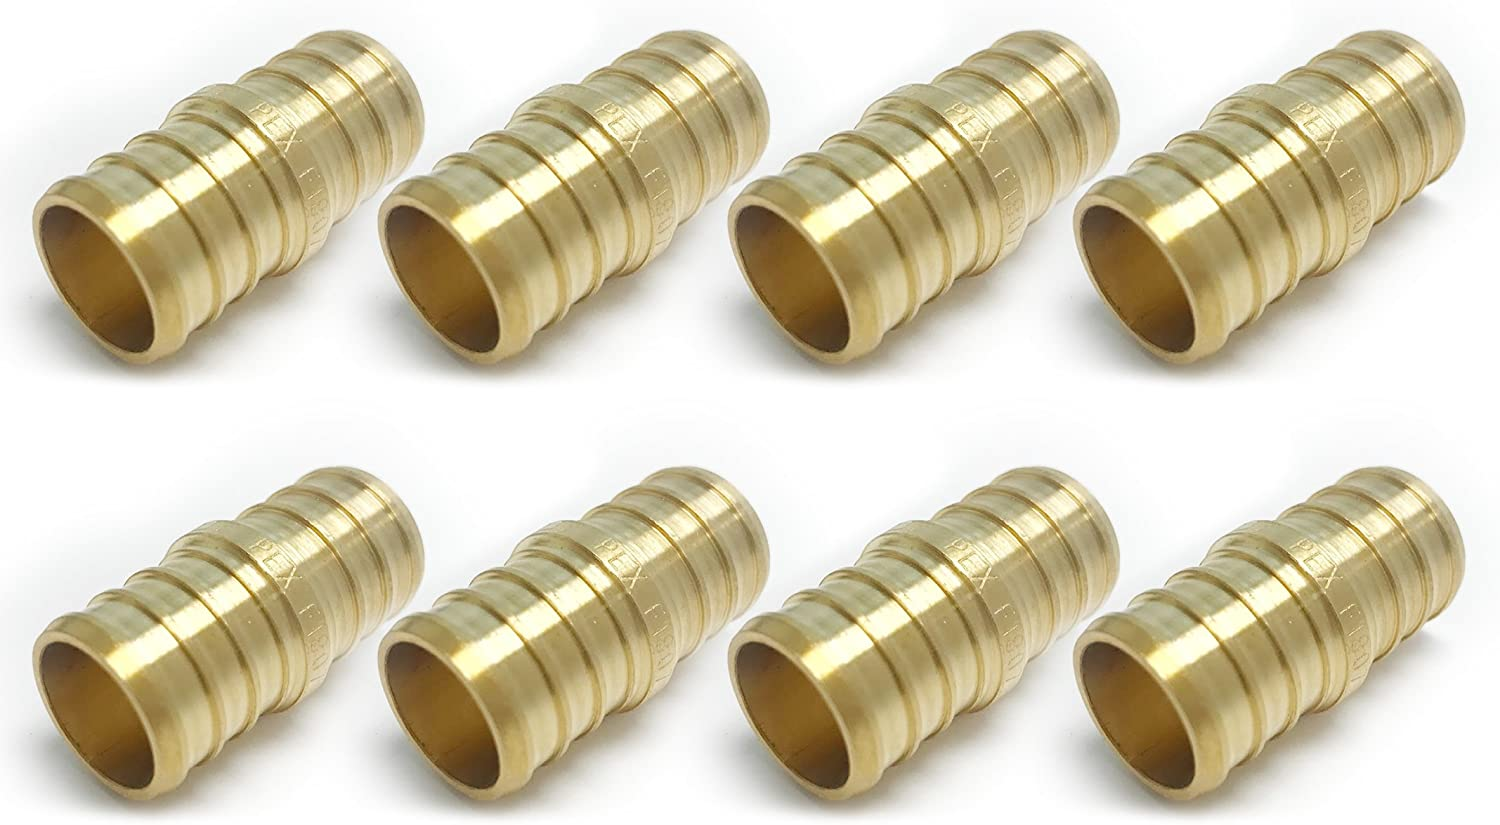 (Pack of 8) EFIELD PEX 1/2INCH BRASS STRAIGHT COUPLINGS CRIMP FITTING(NO LEAD) -8 PIECES